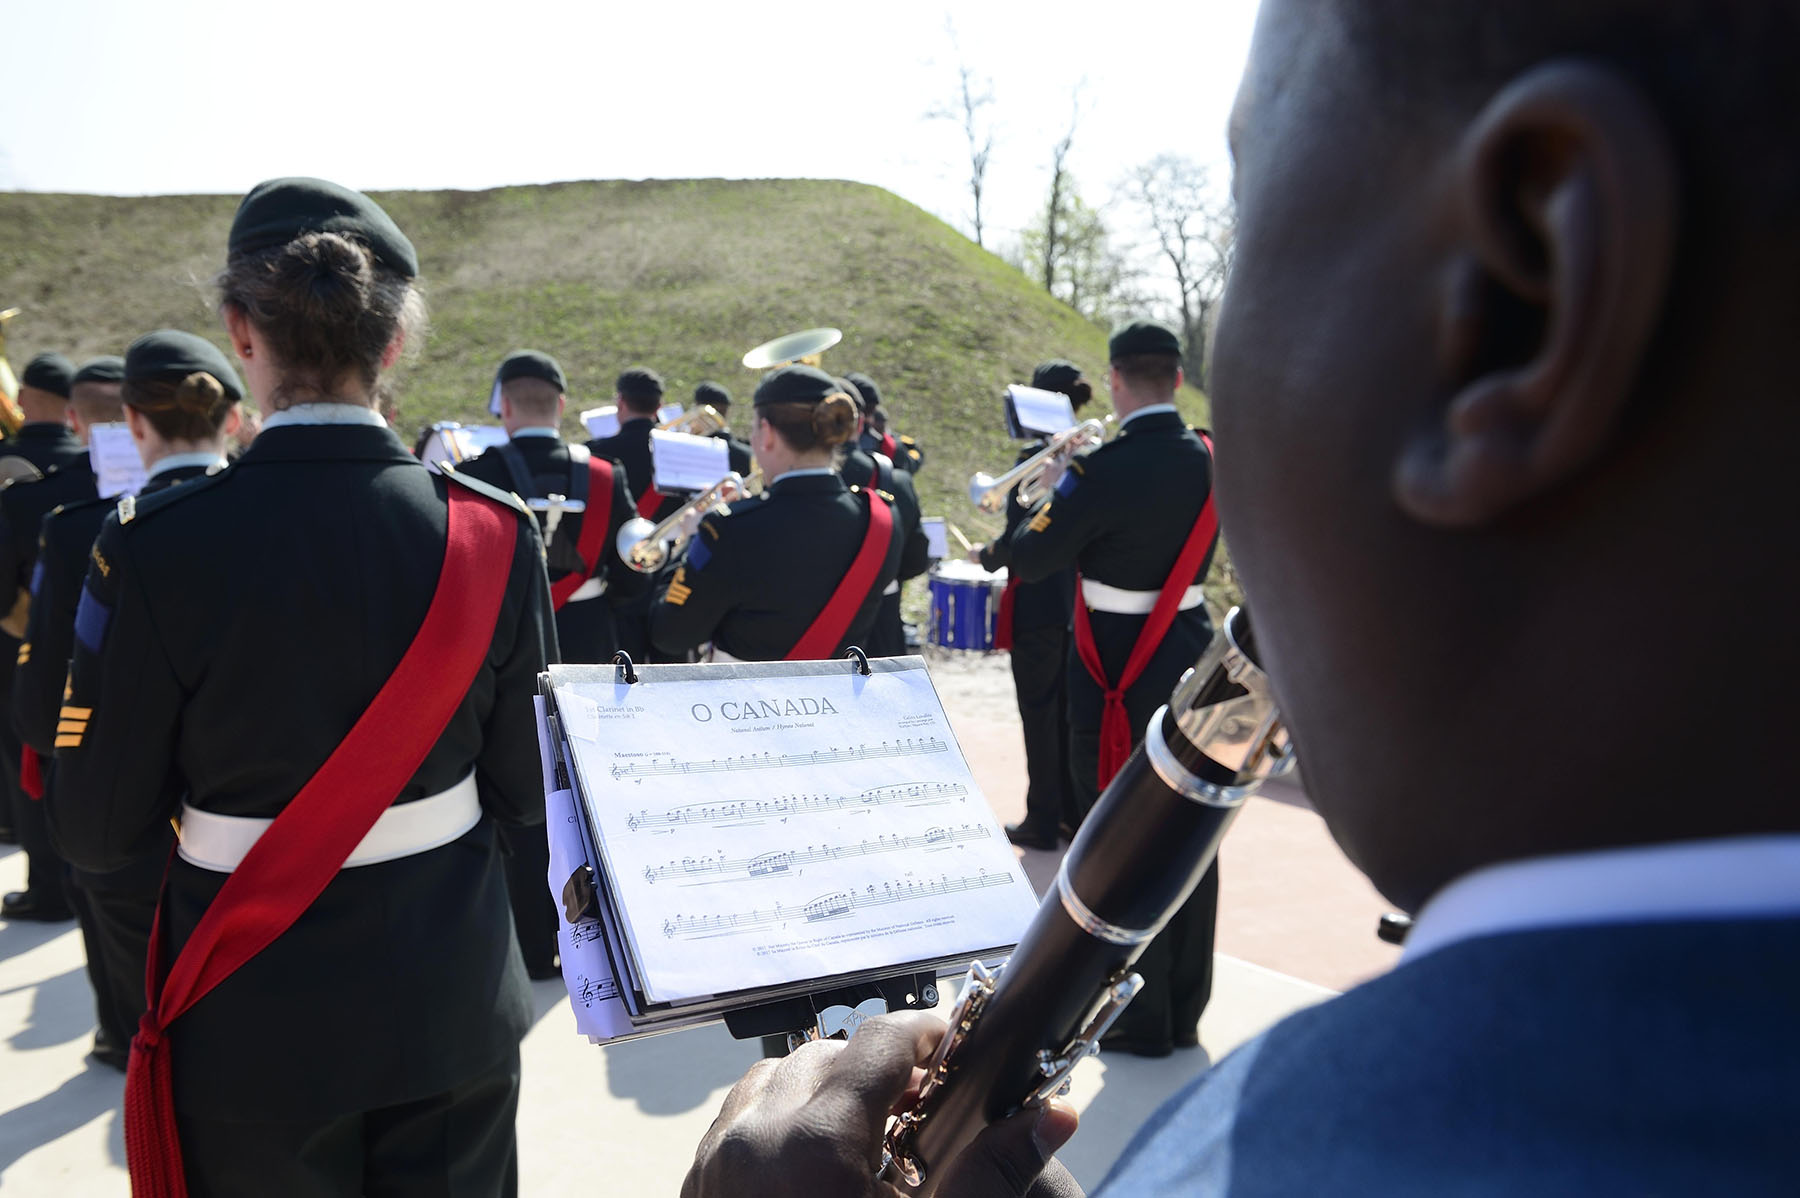 O Canada, our national anthem, was performed by the Canadian Armed Forces band.